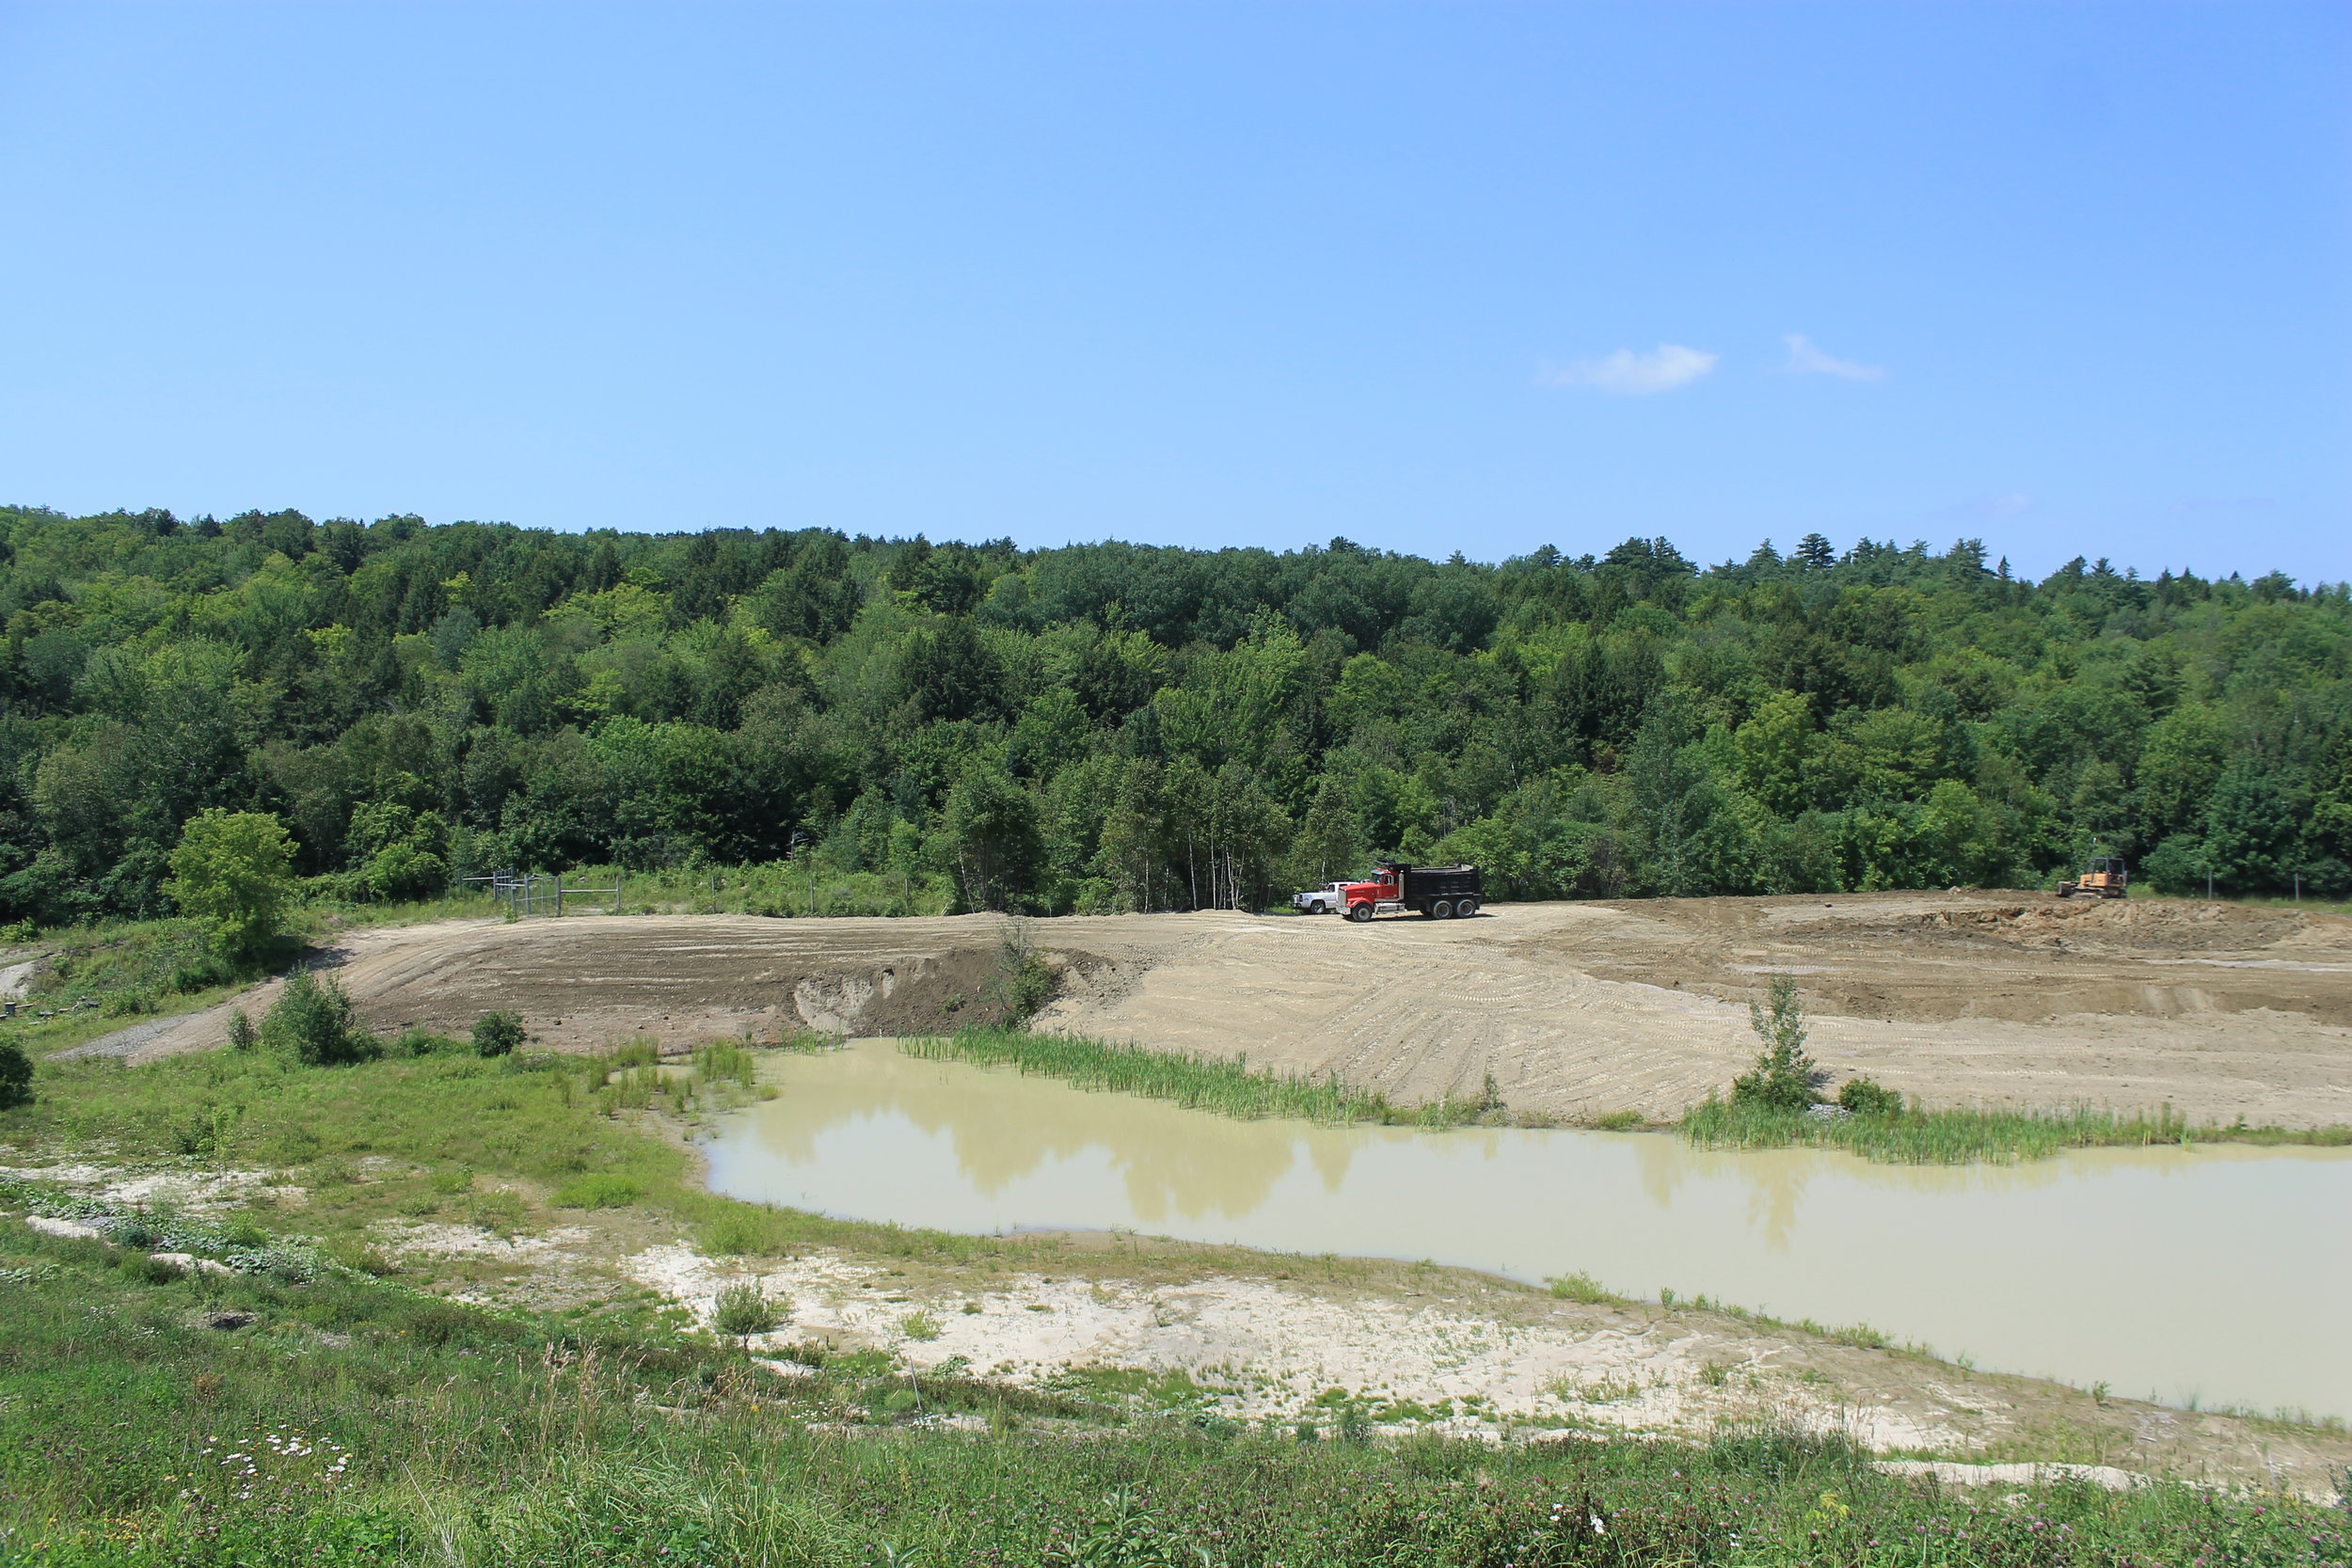 Dennis and Cliffy flattened the area beyond the pond and cut in an access road this summer